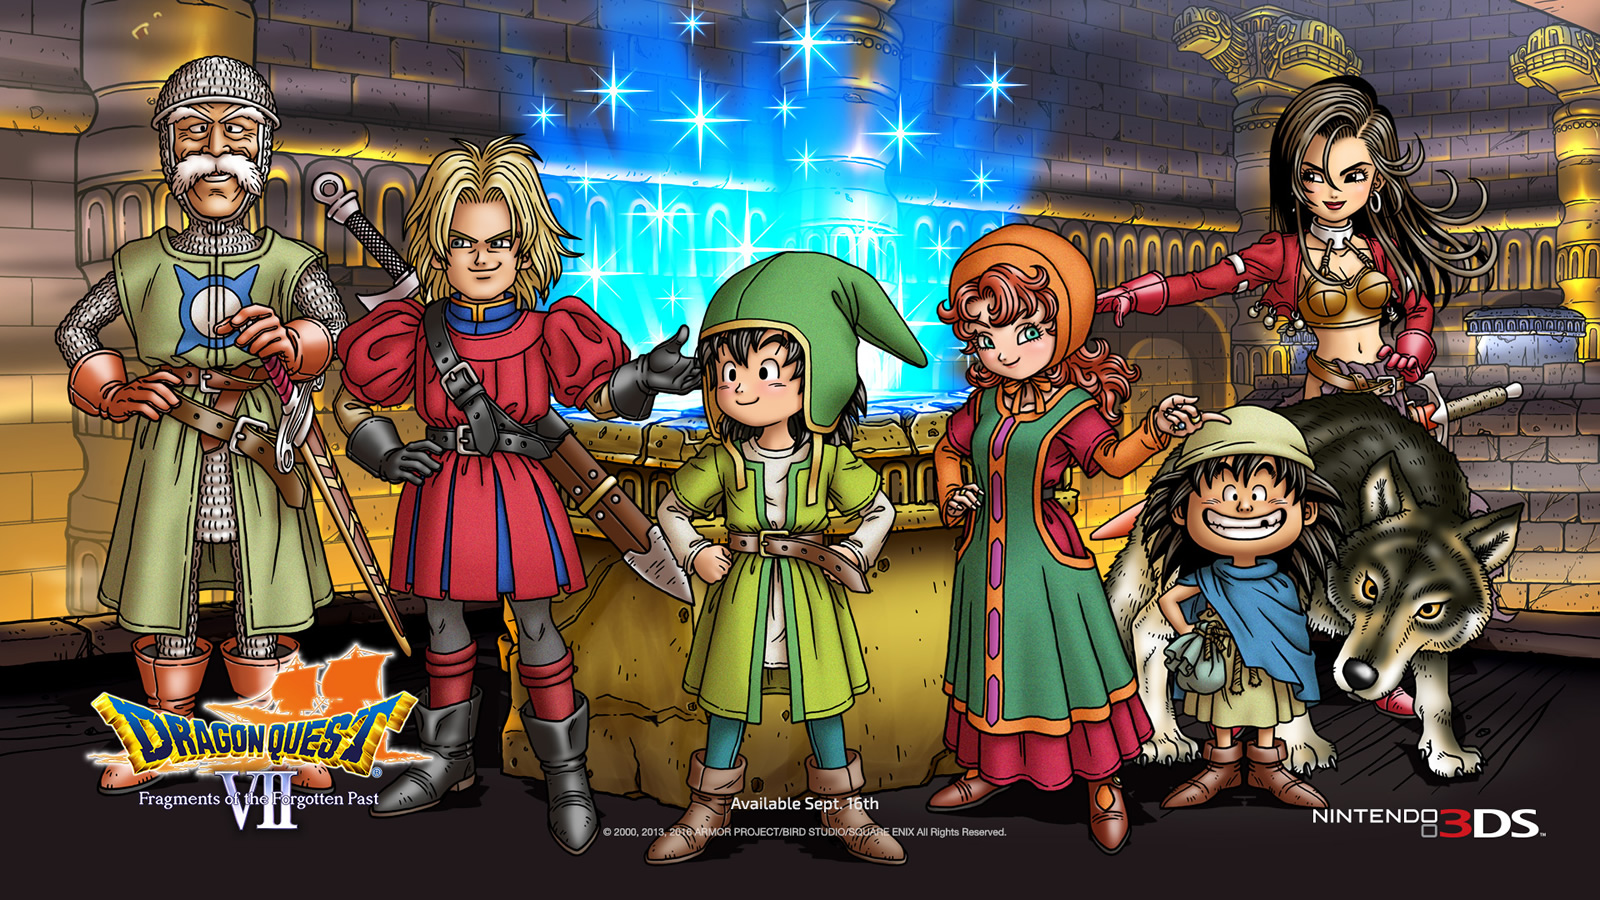 Dragon Quest Vii Fragments Of The Forgotten Past Review 3ds One Of The Best Jrpgs Ever Gearburn